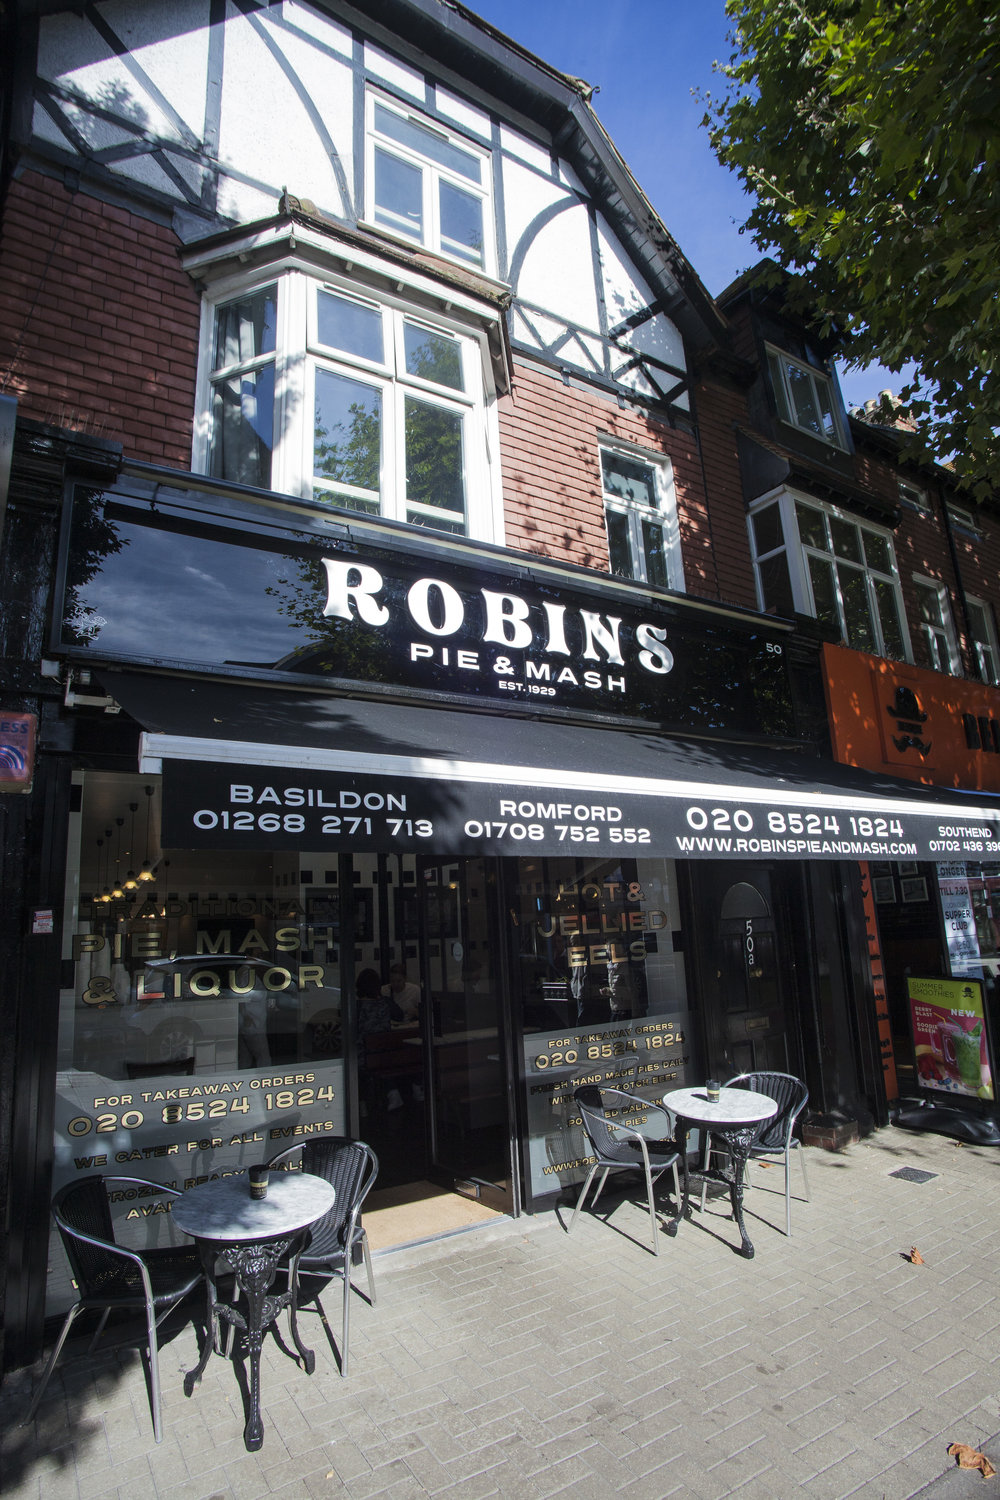 ROBINS_CHINGFORD_7.jpg